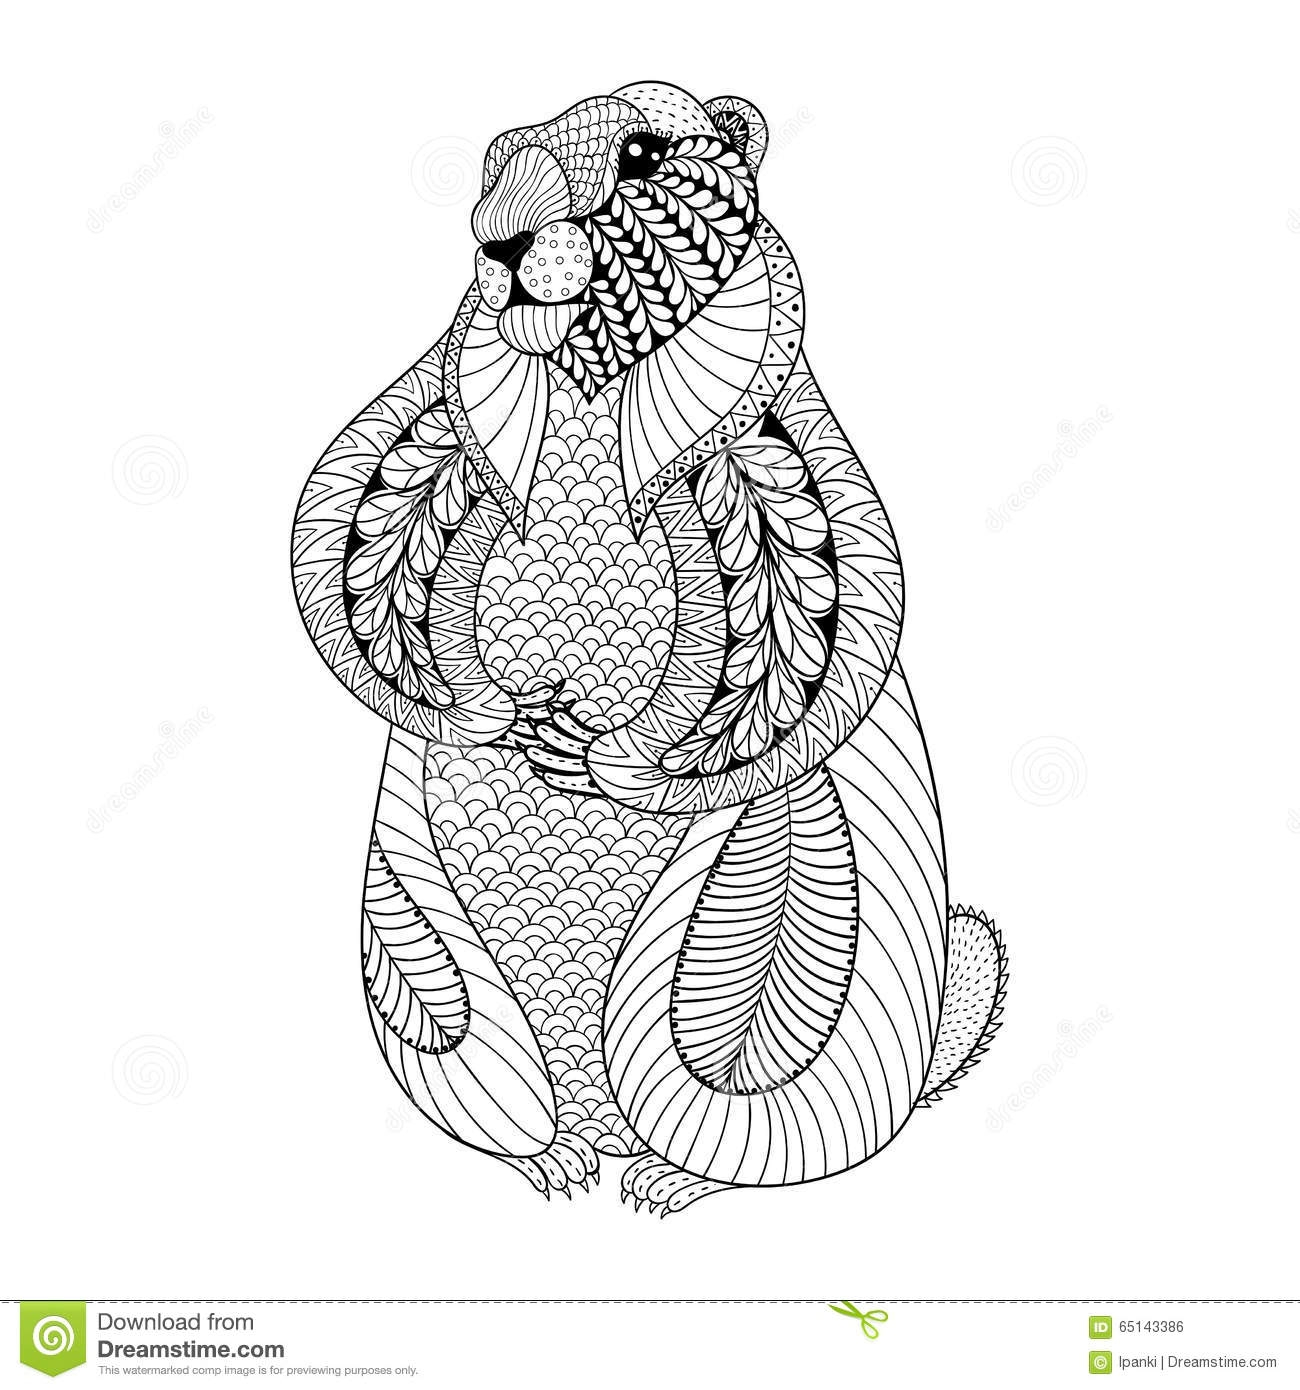 groundhog coloring page - stock illustration hand drawn groundhog adult coloring pages doodle zentangle tribal style day ethnic ornamental tattoo patterned t image